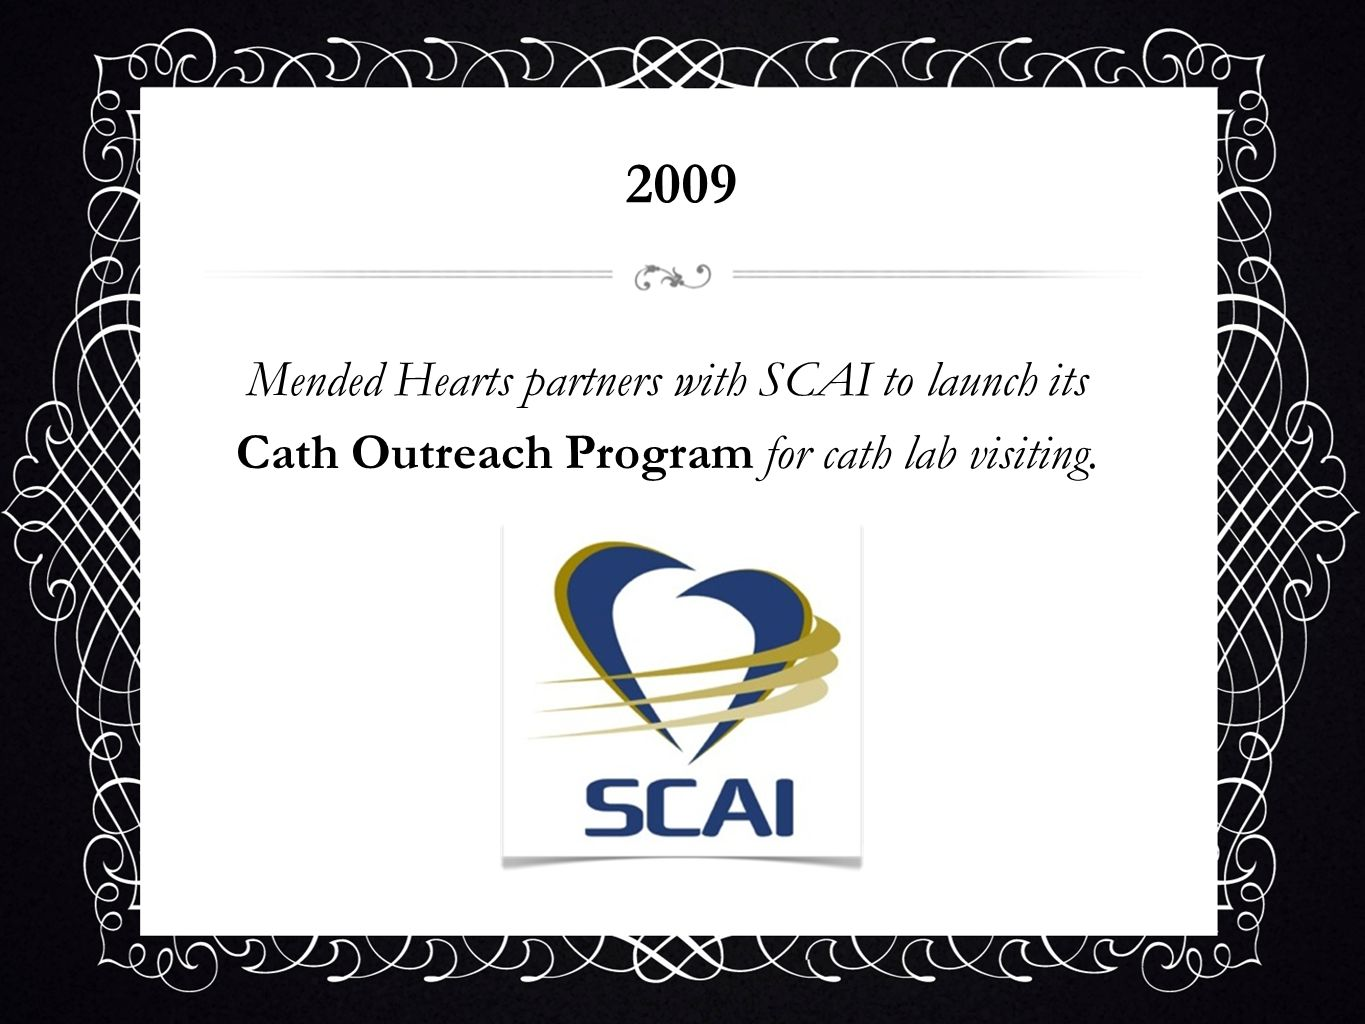 2009 Mended Hearts partners with SCAI to launch its Cath Outreach Program for cath lab visiting.